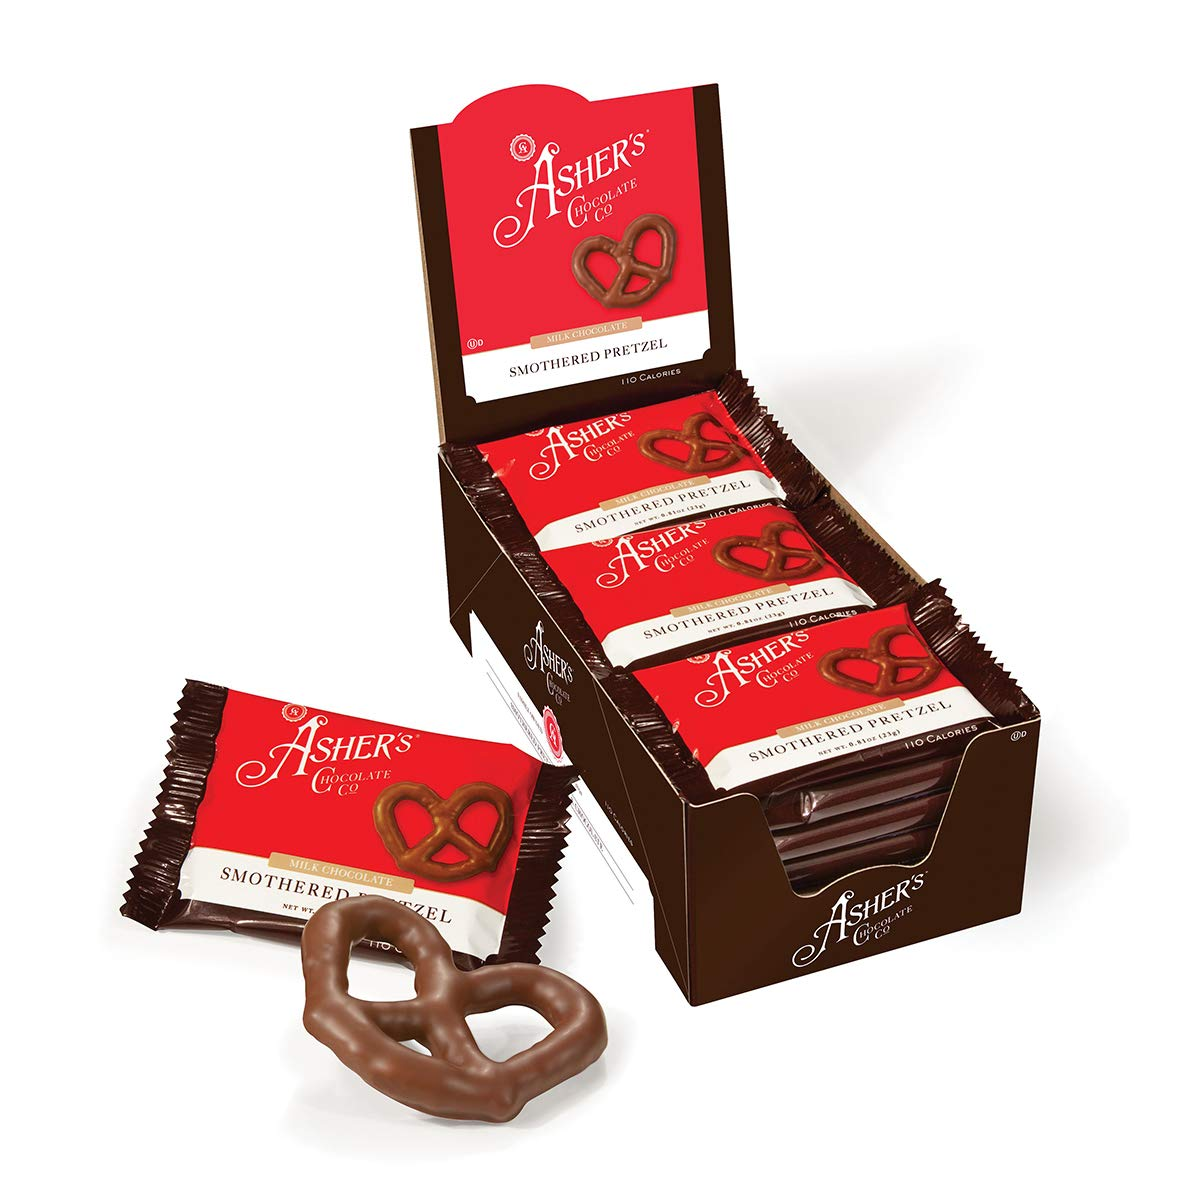 Asher's Chocolate, Chocolate Covered Pretzels, Gourmet Sweet and Salty Candy, Small Batches of Kosher Chocolate, Family Owned Since 1892 (18 count, Milk Chocolate) by Asher's Chocolates